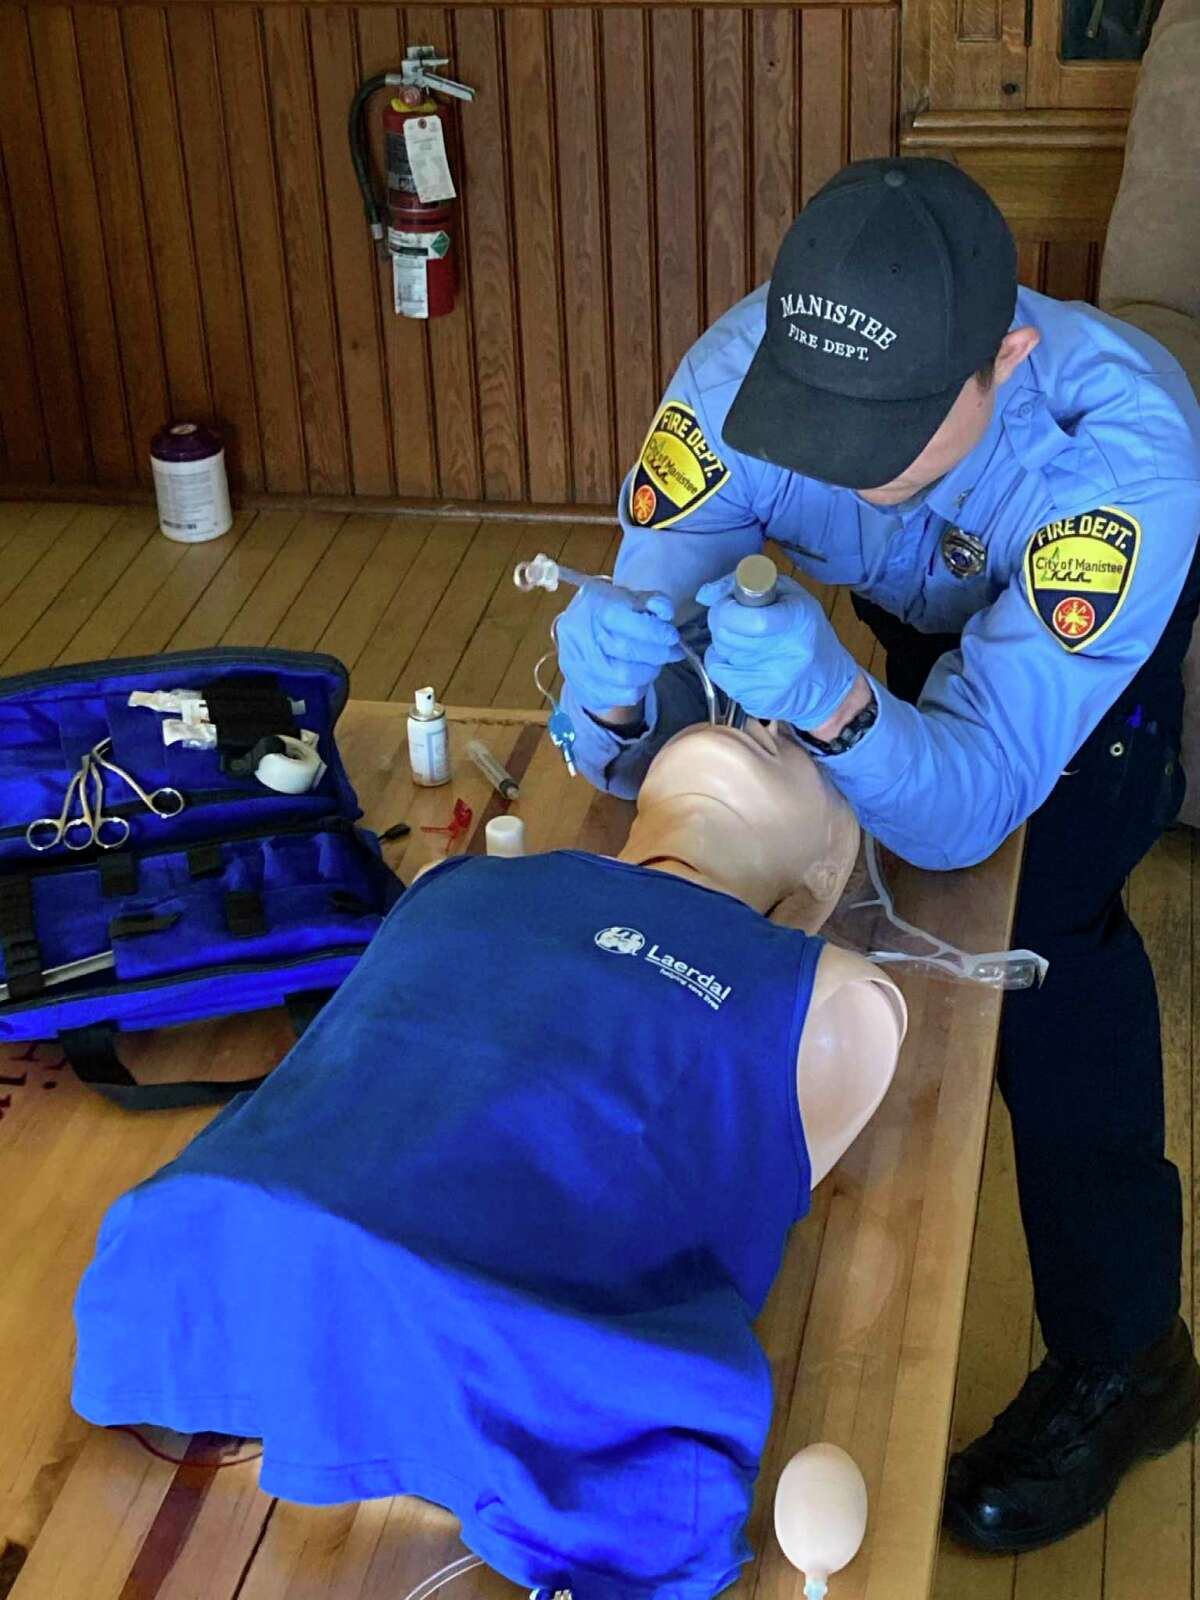 """""""The department utilized this money to purchase an advanced airway mannequin for medical training,"""" Manistee Fire Chief Mark Cameron said. """"This device will allow paramedics to practice and hone their skills to better their performance during emergency airway procedures."""" (Courtesy photo)"""